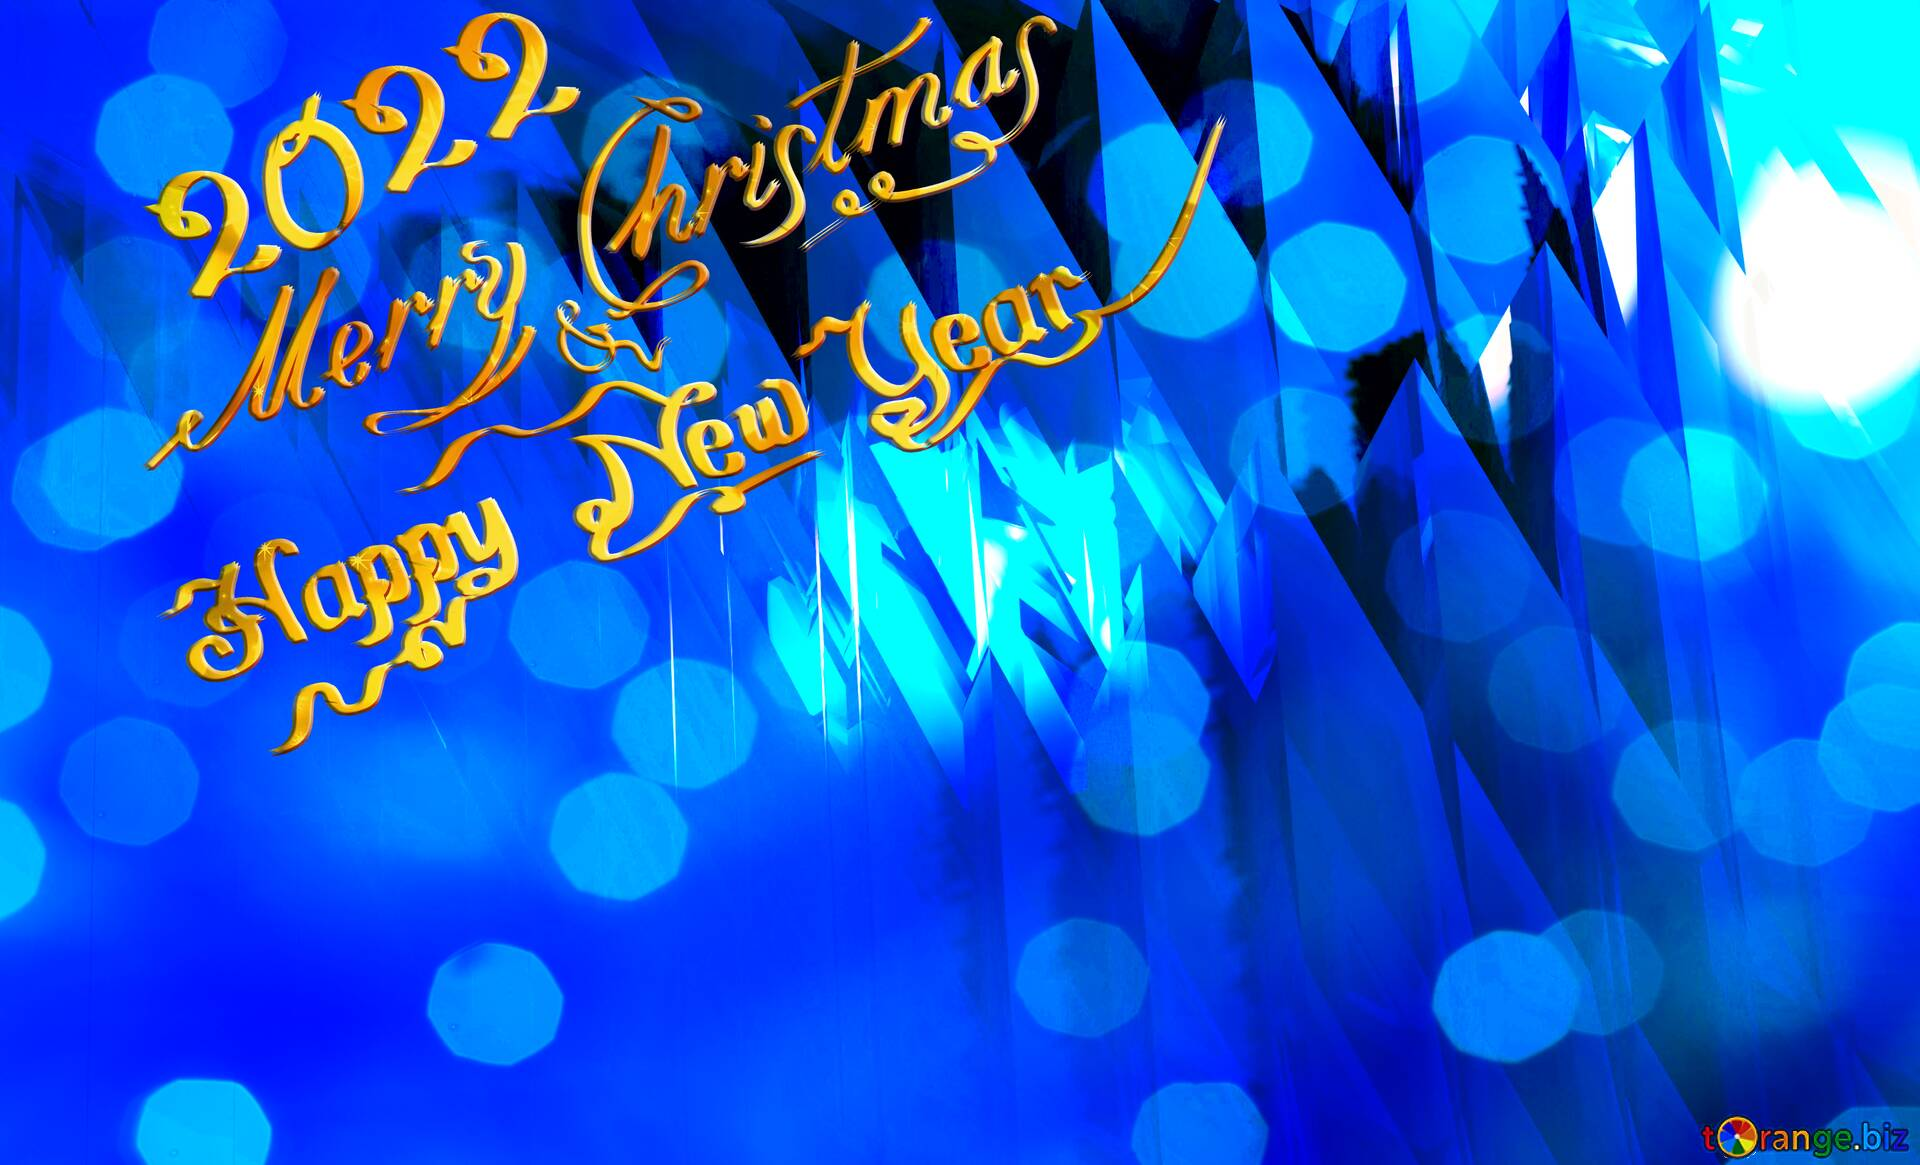 download free picture blue futuristic shape computer generated abstract background happy new year 2021 card background merry christmas on cc by license free image stock torange biz fx 183267 download free picture blue futuristic shape computer generated abstract background happy new year 2021 card background merry christmas on cc by license free image stock torange biz fx 183267